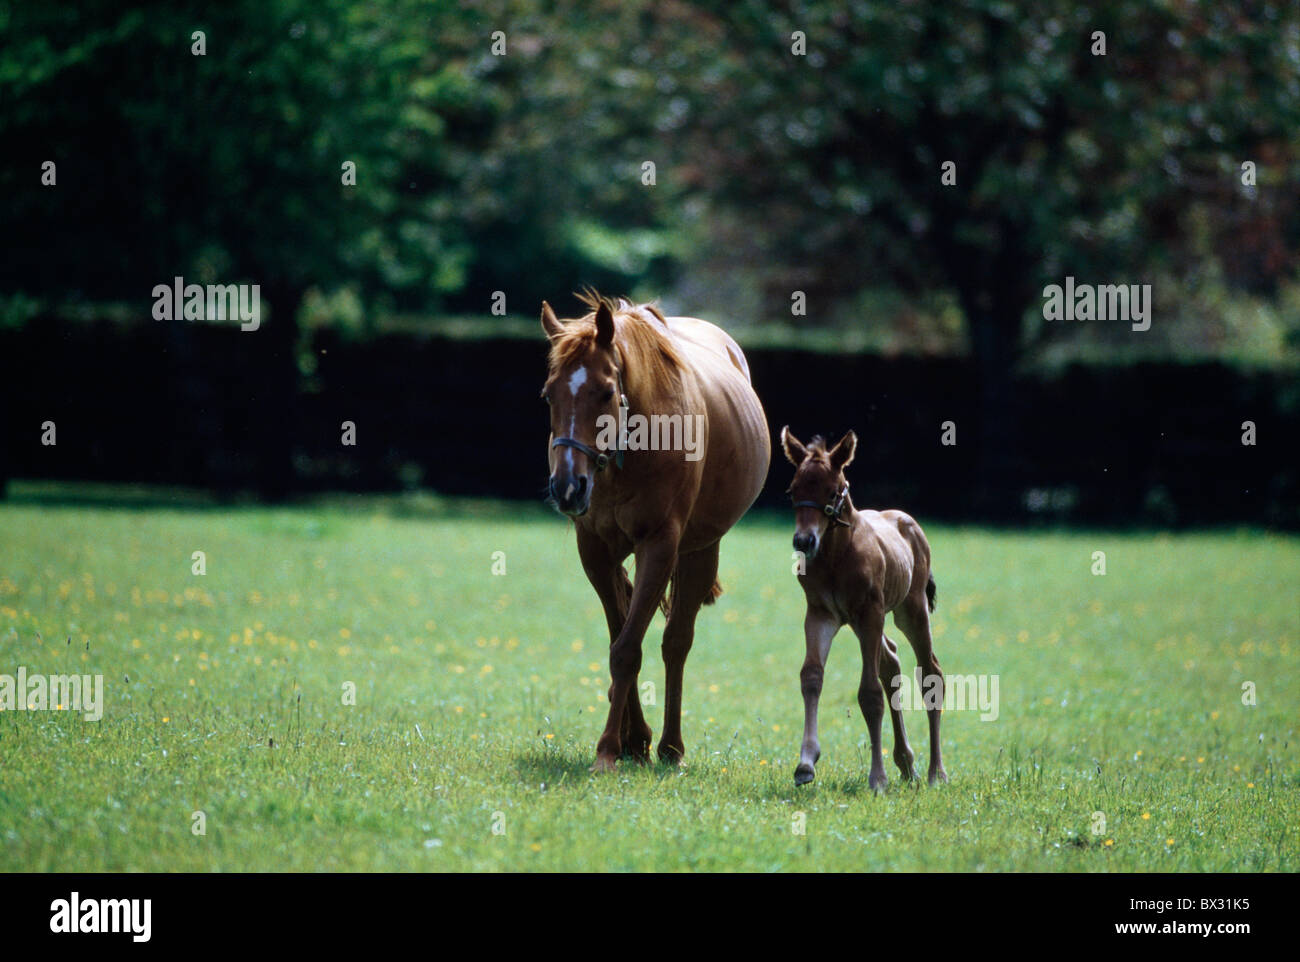 Horses - Thoroughbred, Mare And Foal, - Stock Image